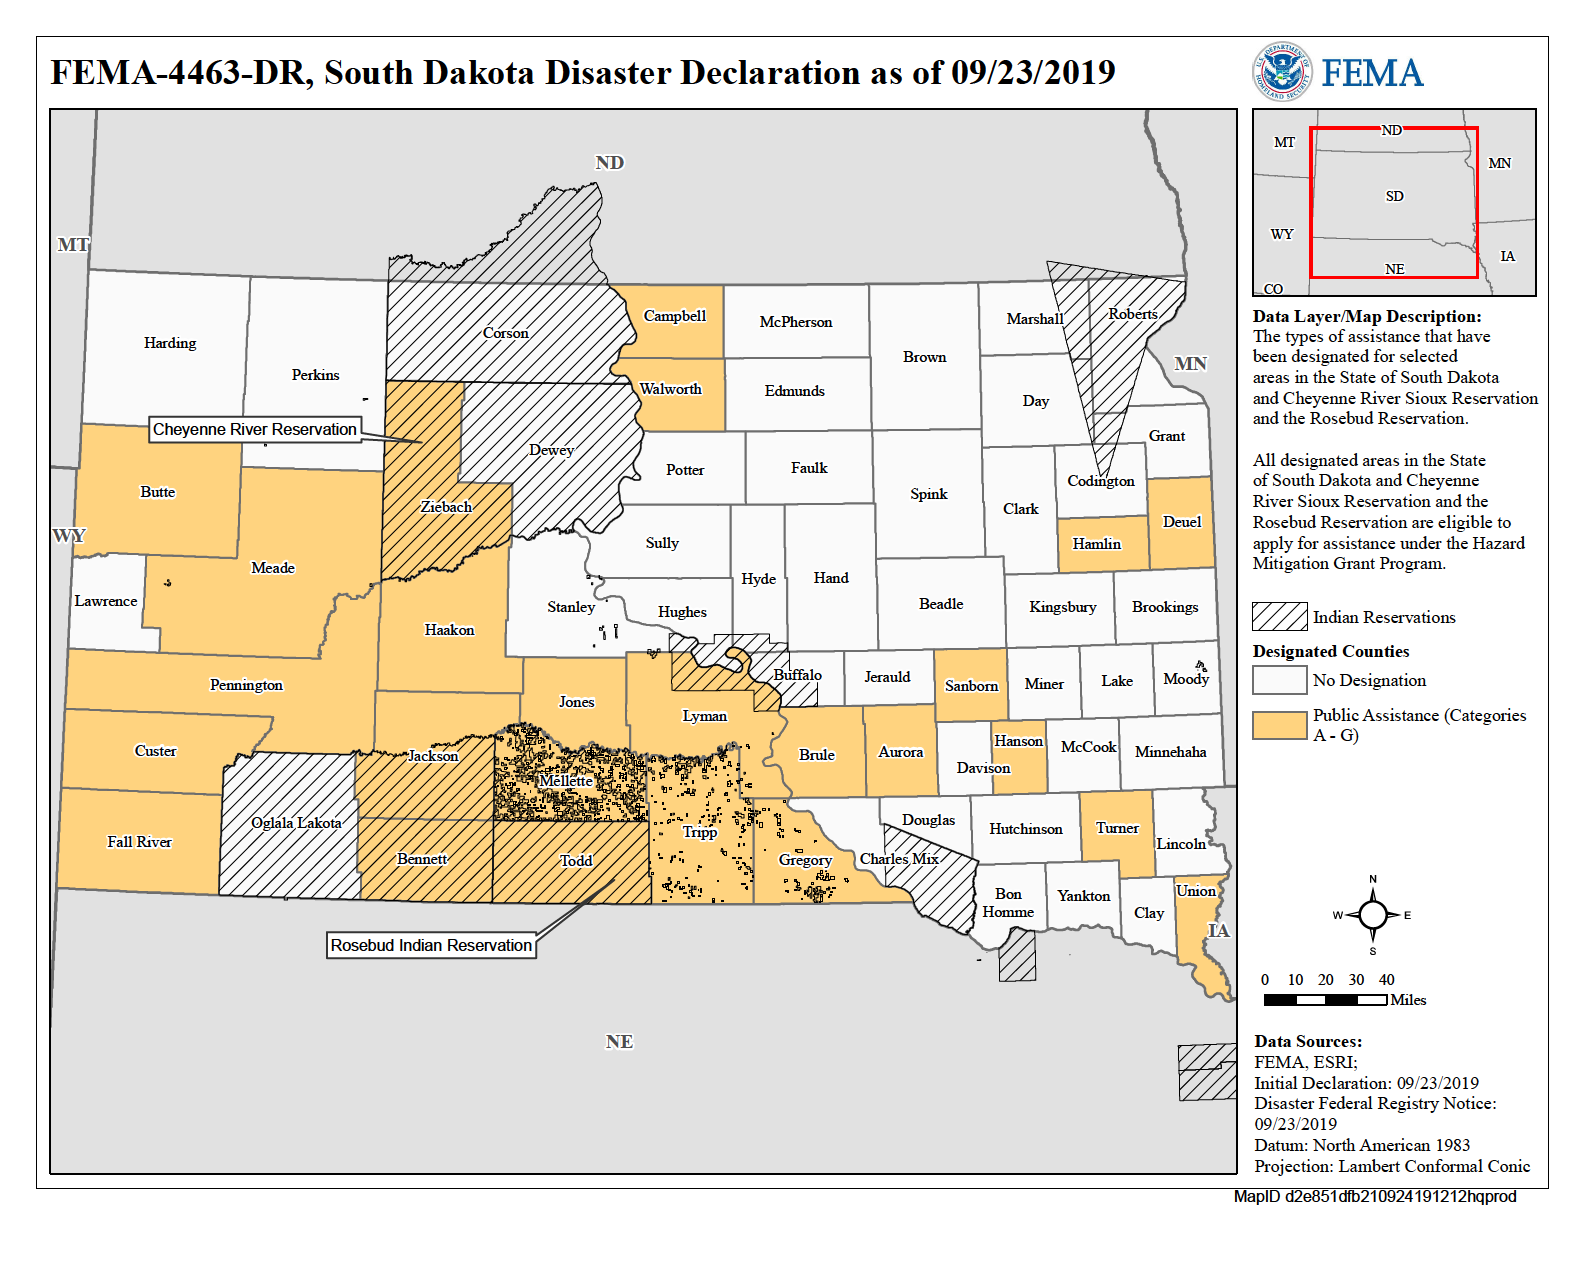 South Dakota Severe Storms And Flooding (DR-4463) | FEMA.gov on map for th, map for ma, map for wv, map for ri, map for illinois, map for az, map for au, map for la, map for ny, map for nv, map for canada, map for tx, map for future, map for sudan, map for pa, map for ga, map for co, map for nc, map for mo,